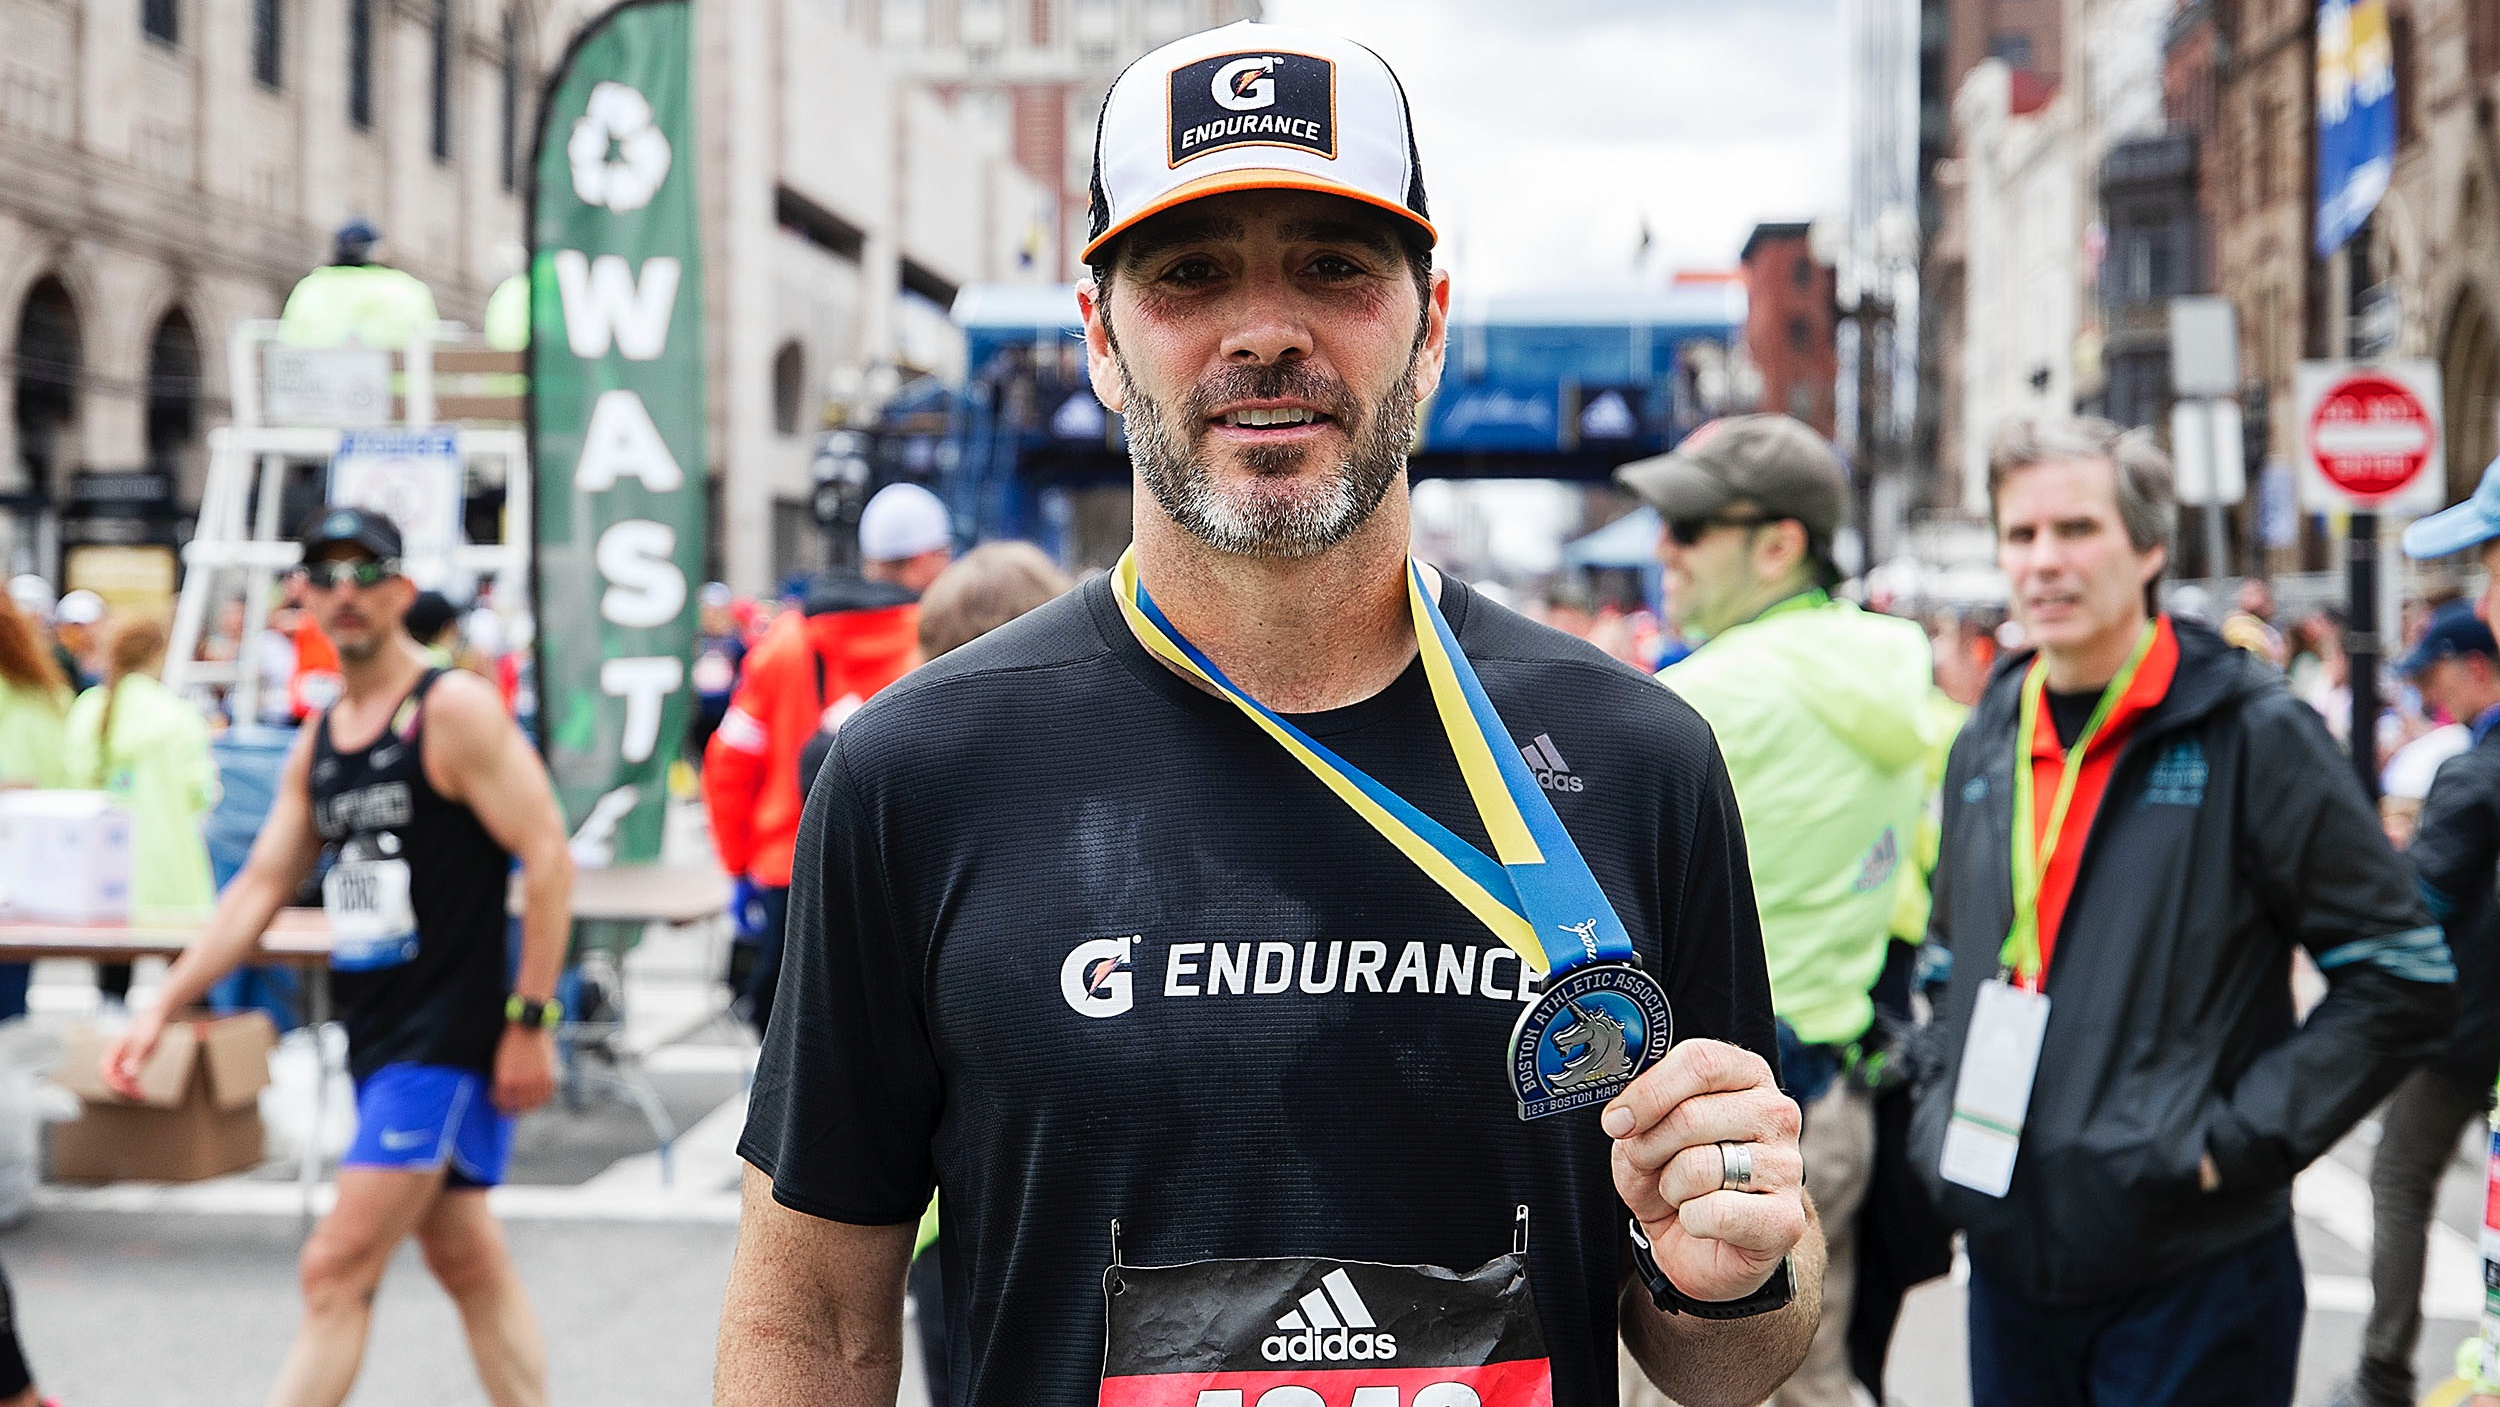 Jimmie Johnson Finished the Boston Marathon and Qualified for Next Year's Race, Too